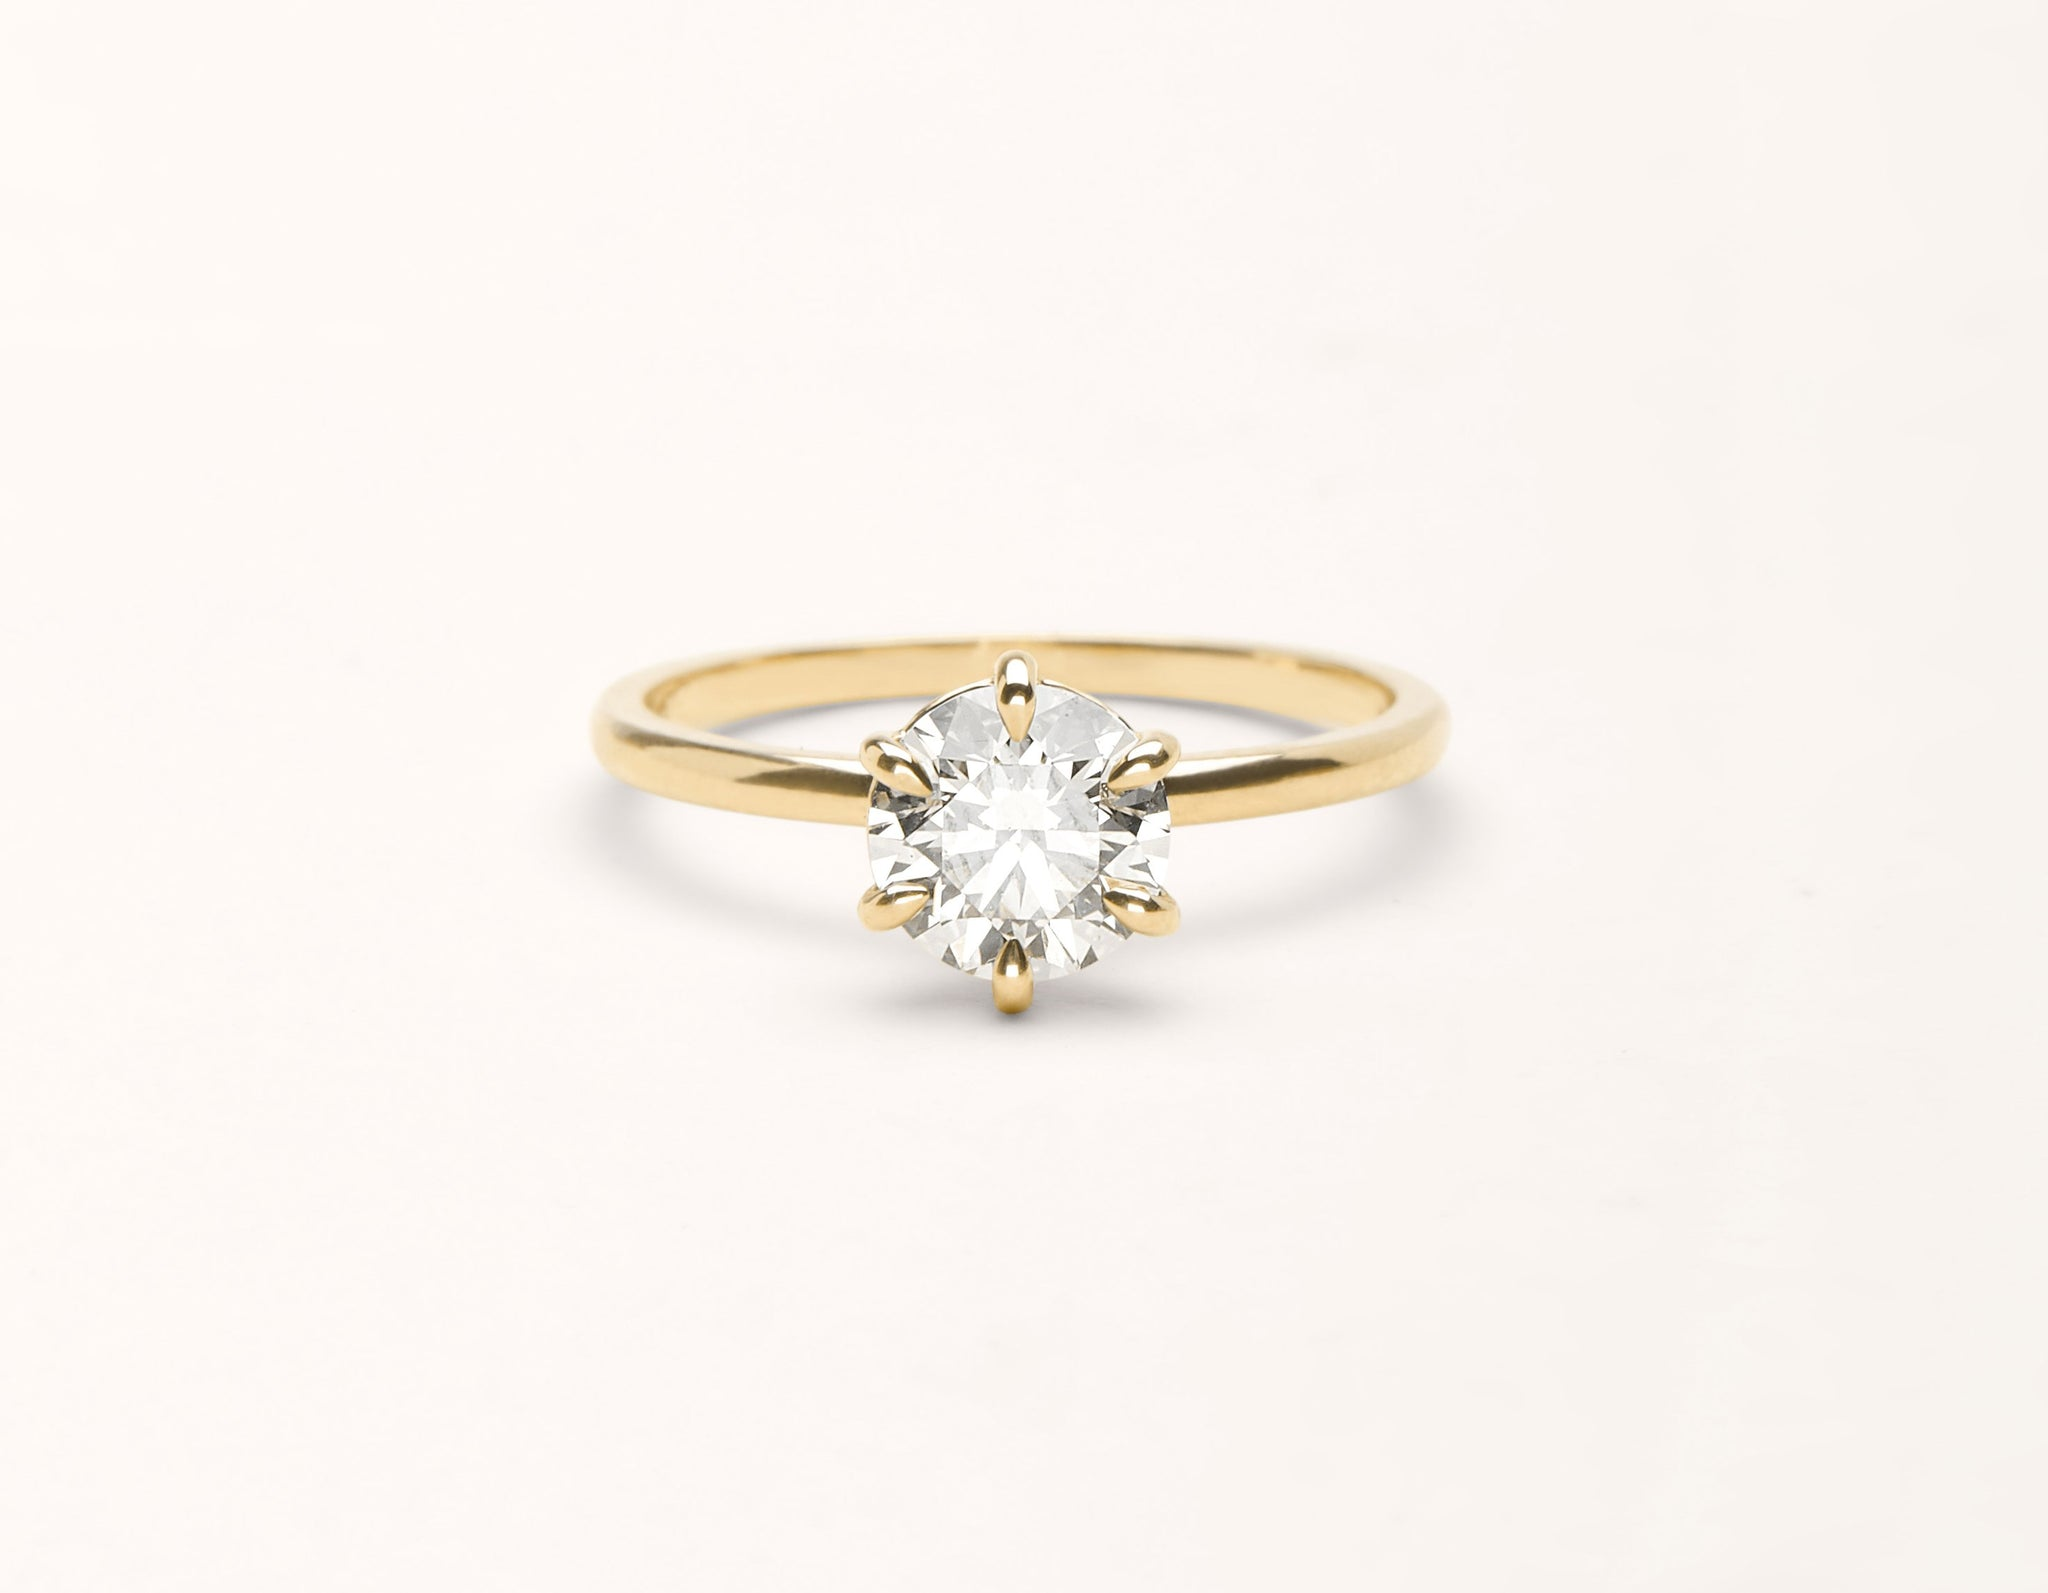 Minimalist 18k solid yellow gold The Solitaire engagement ring round brilliant cut 1 ct diamond Vrai and Oro